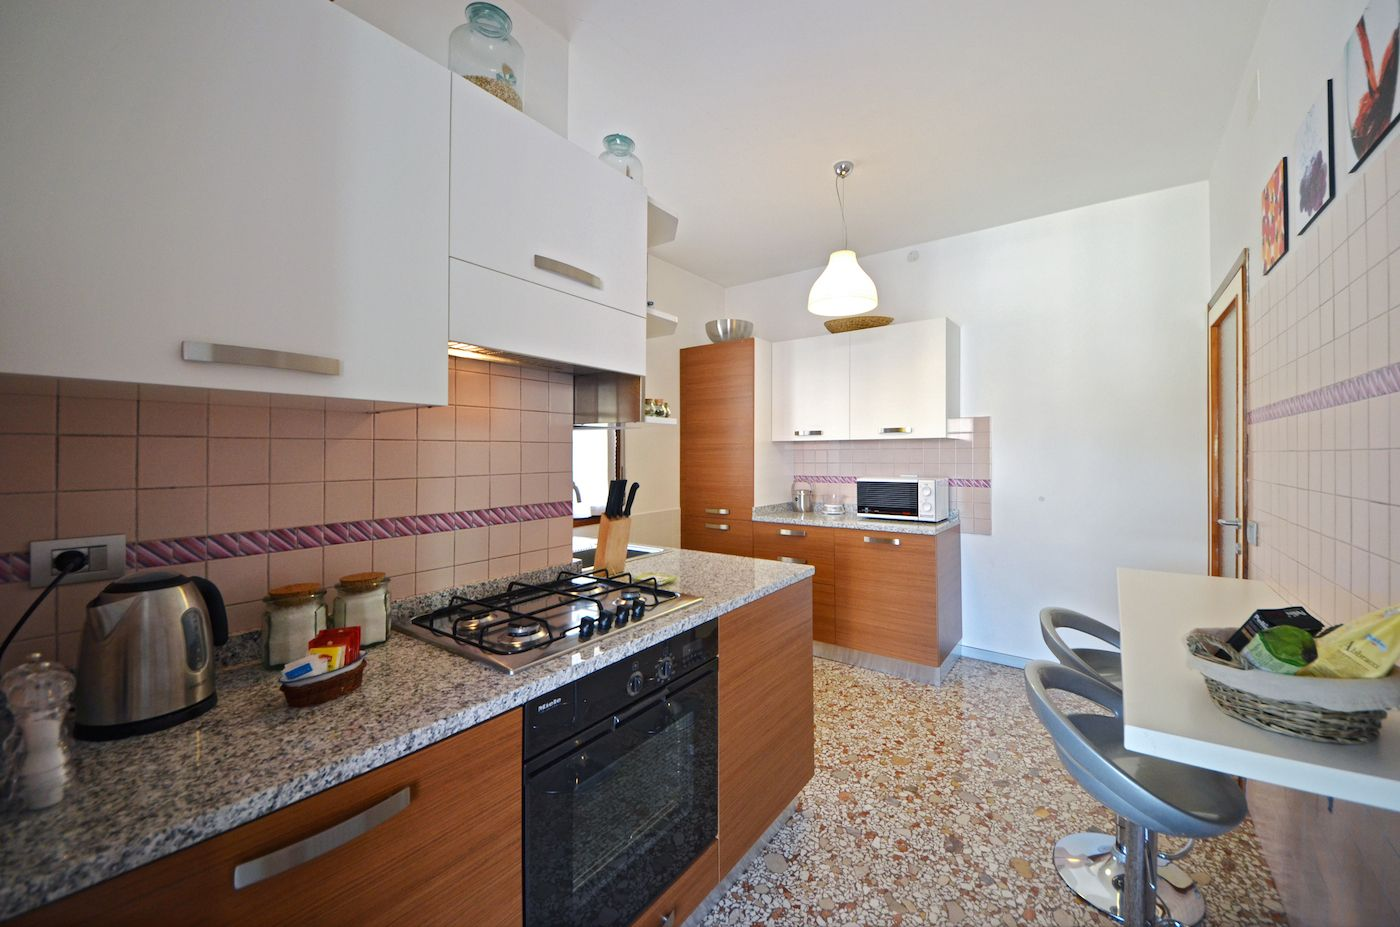 spacious, functional and fully equipped kitchen